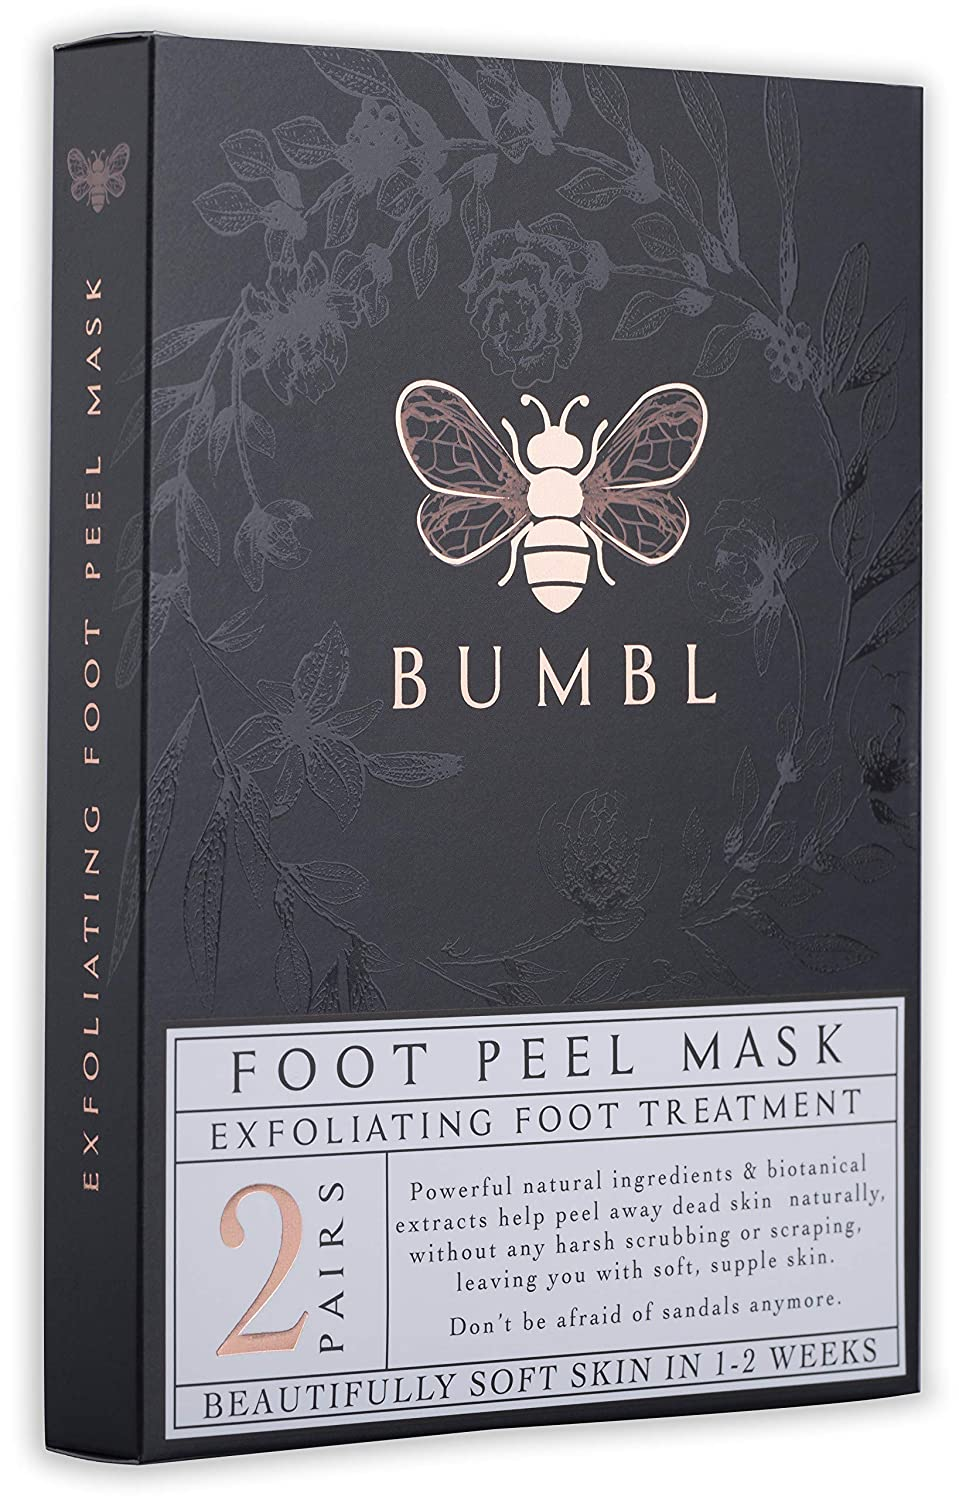 BUMBL Foot Peel Mask, Exfoliating Callus Remover. Perfect for Removing Dead Skin, Eliminating Foot Odor, and Repairing Rough Heels. Make Your Feet Baby Soft, All-Natural Biotanicals, 2 Pairs Per Box KylerMaddox